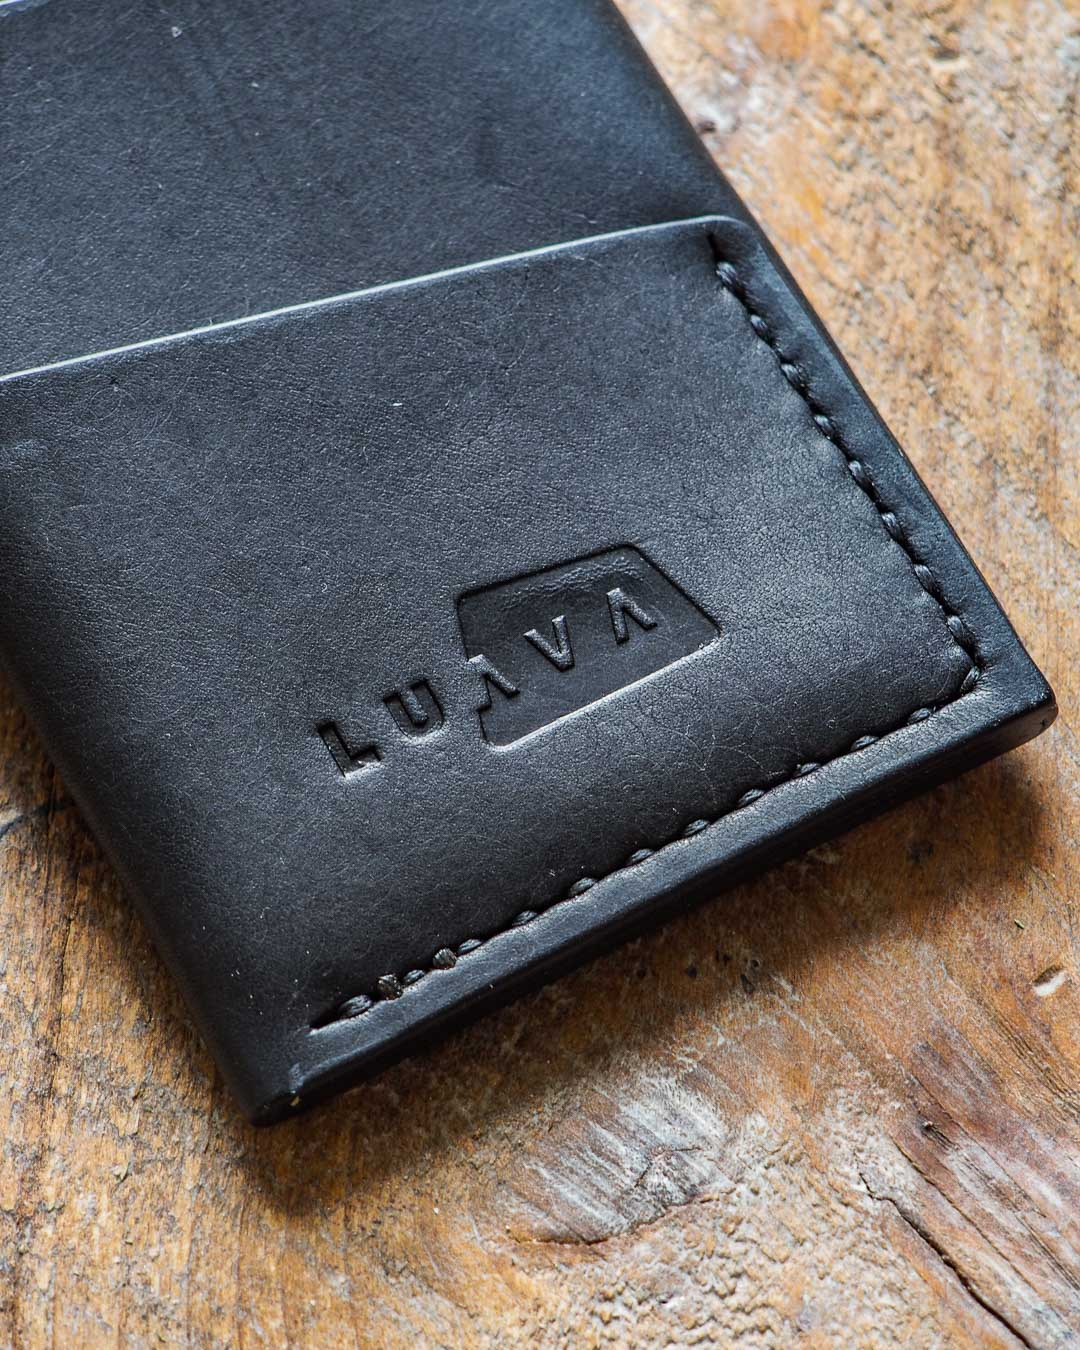 Luava handmade leather wallet handcrafted card holder cardholder made in finland overfold pueblo black logo detail